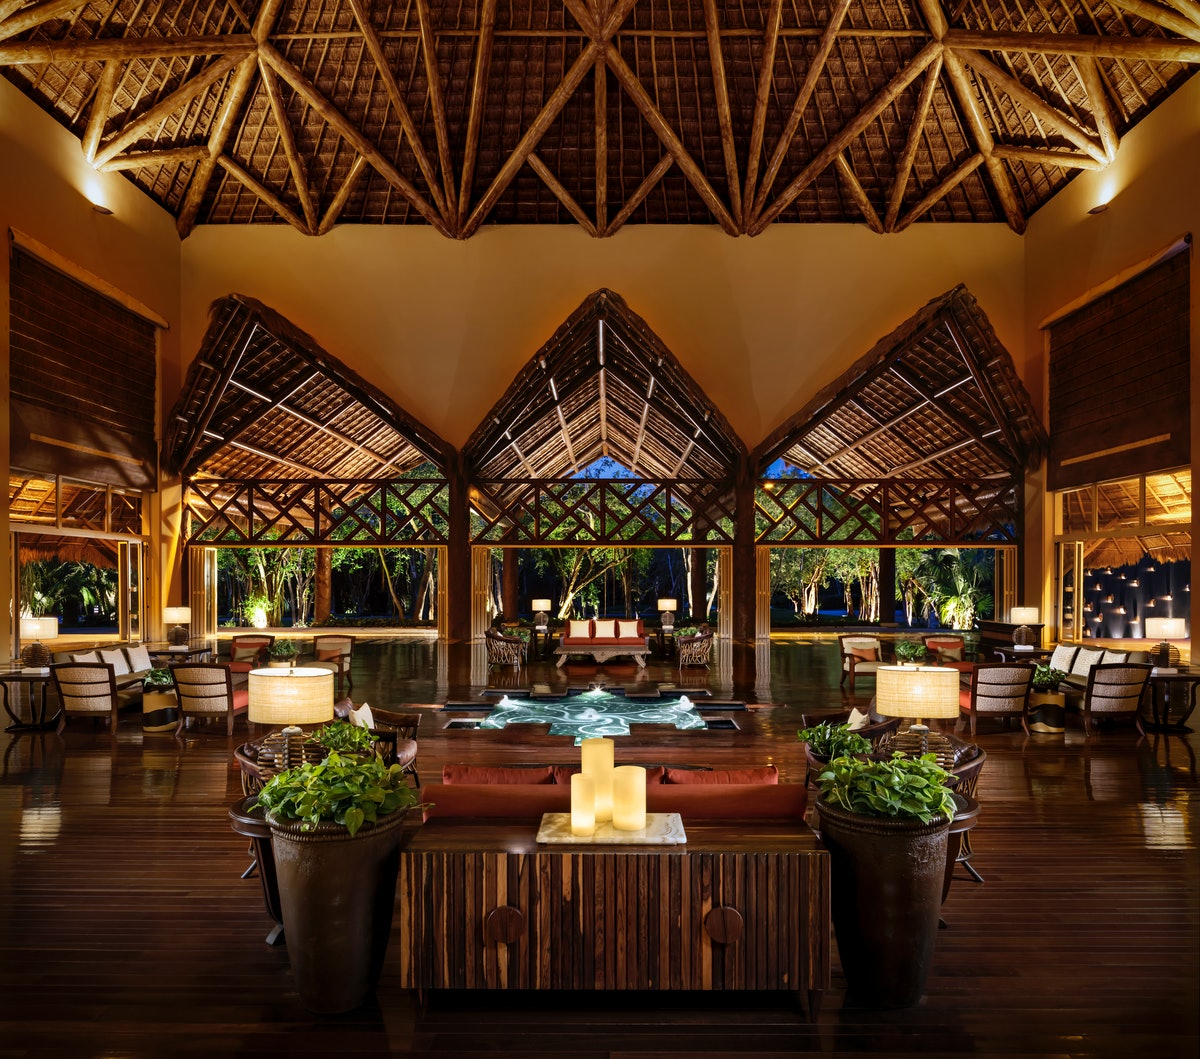 The lobby at Grand Velas Riviera Maya has an outdoorsy design and romantic atmosphere at night.